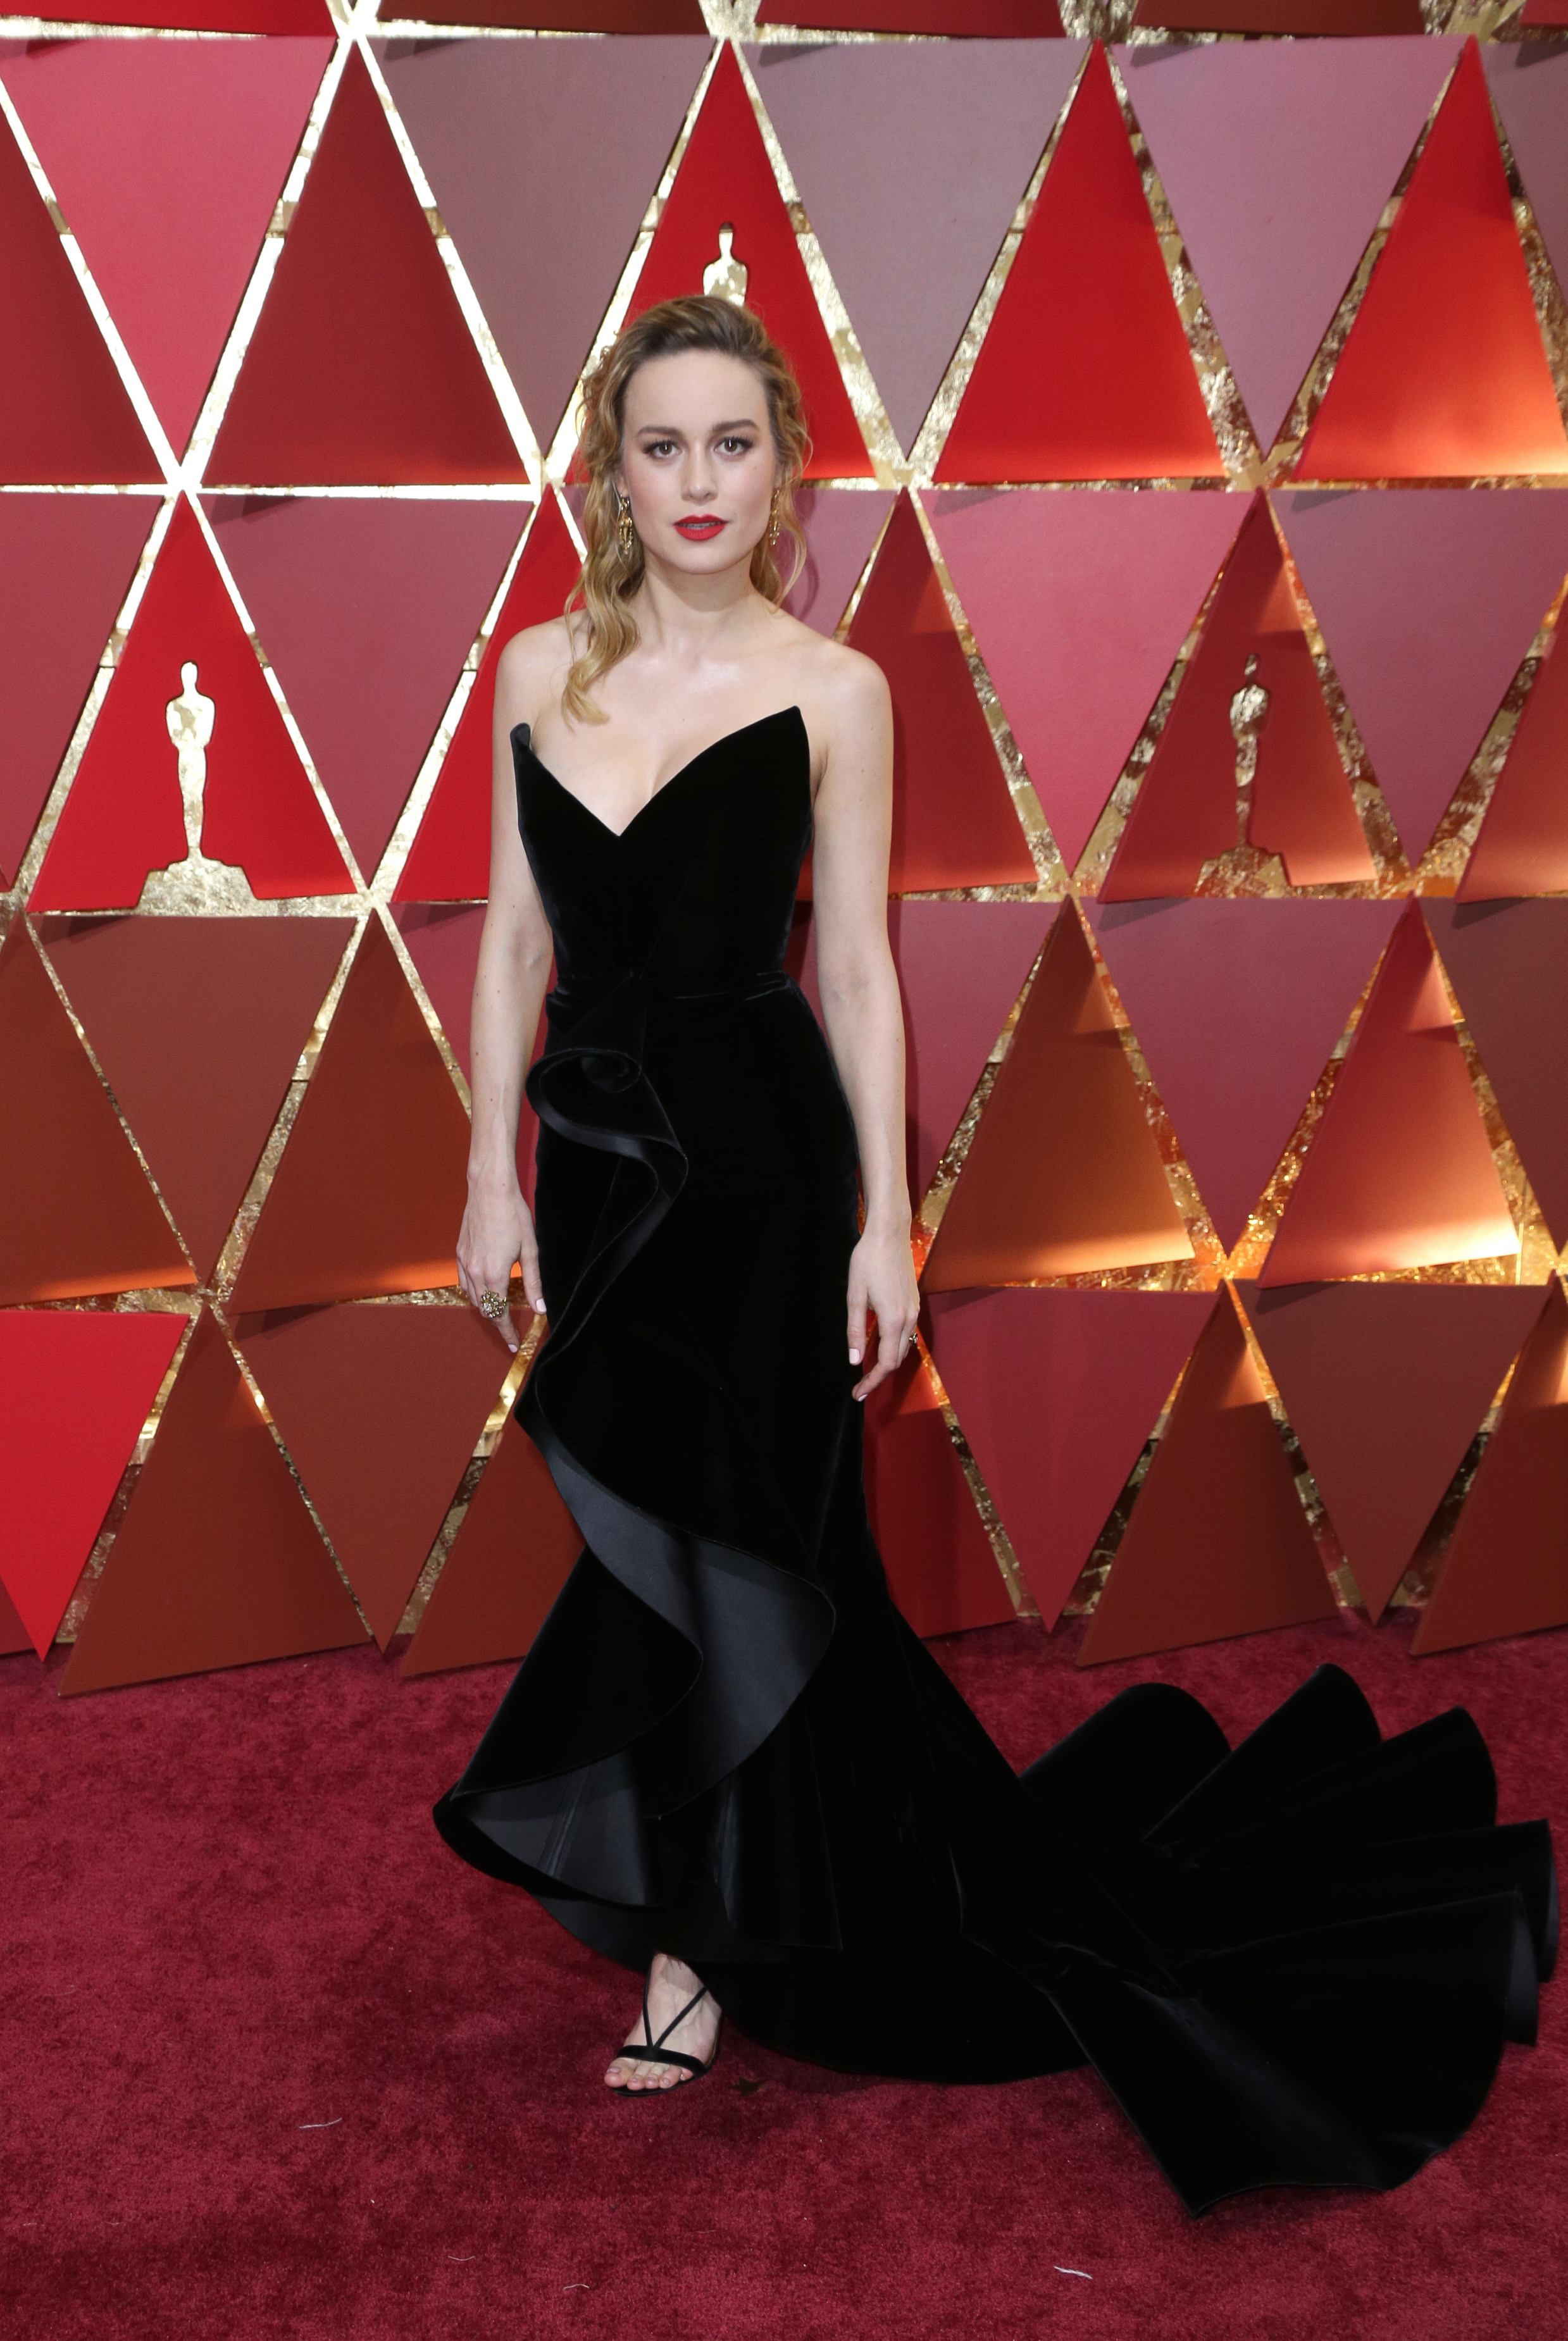 Mandatory Credit: Photo by Jim Smeal/BEI/Shutterstock (8434881qp) Brie Larson 89th Annual Academy Awards, Arrivals, Los Angeles, USA - 26 Feb 2017